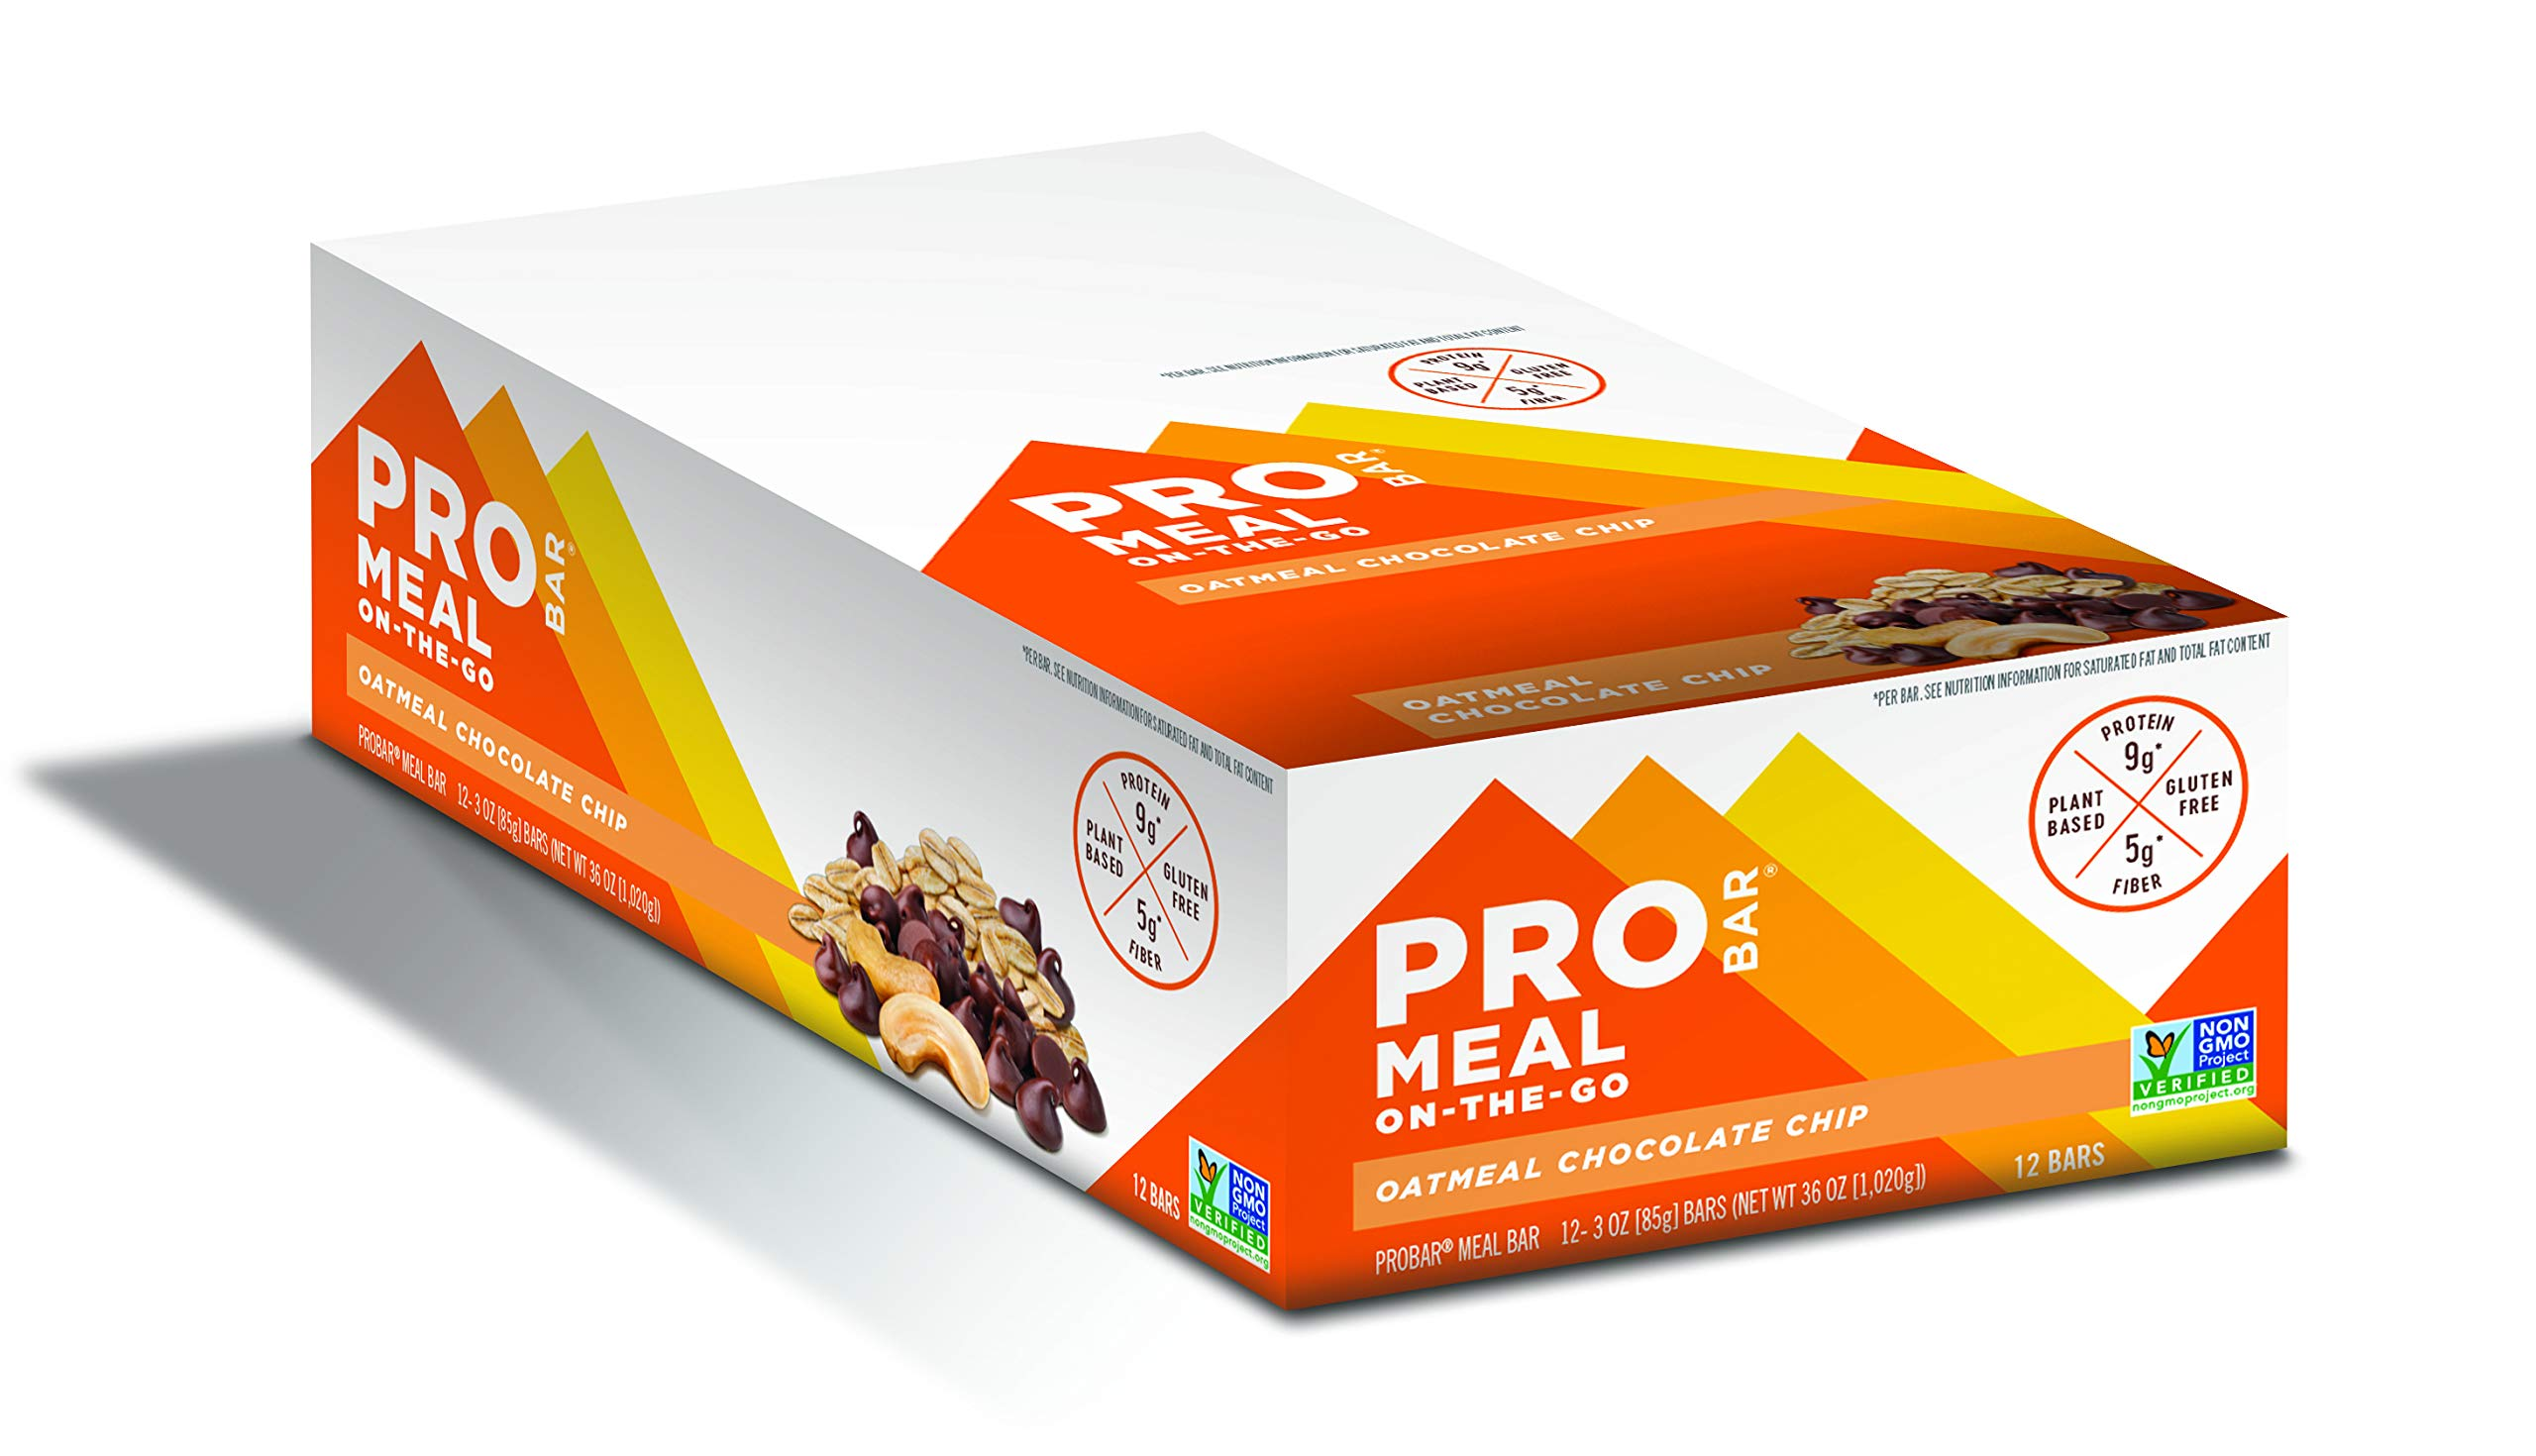 PROBAR - Meal Bar, Oatmeal Chocolate Chip, Non-GMO, Gluten-Free, Certified Organic, Healthy, Plant-Based Whole Food Ingredients, Natural Energy (12 Count)